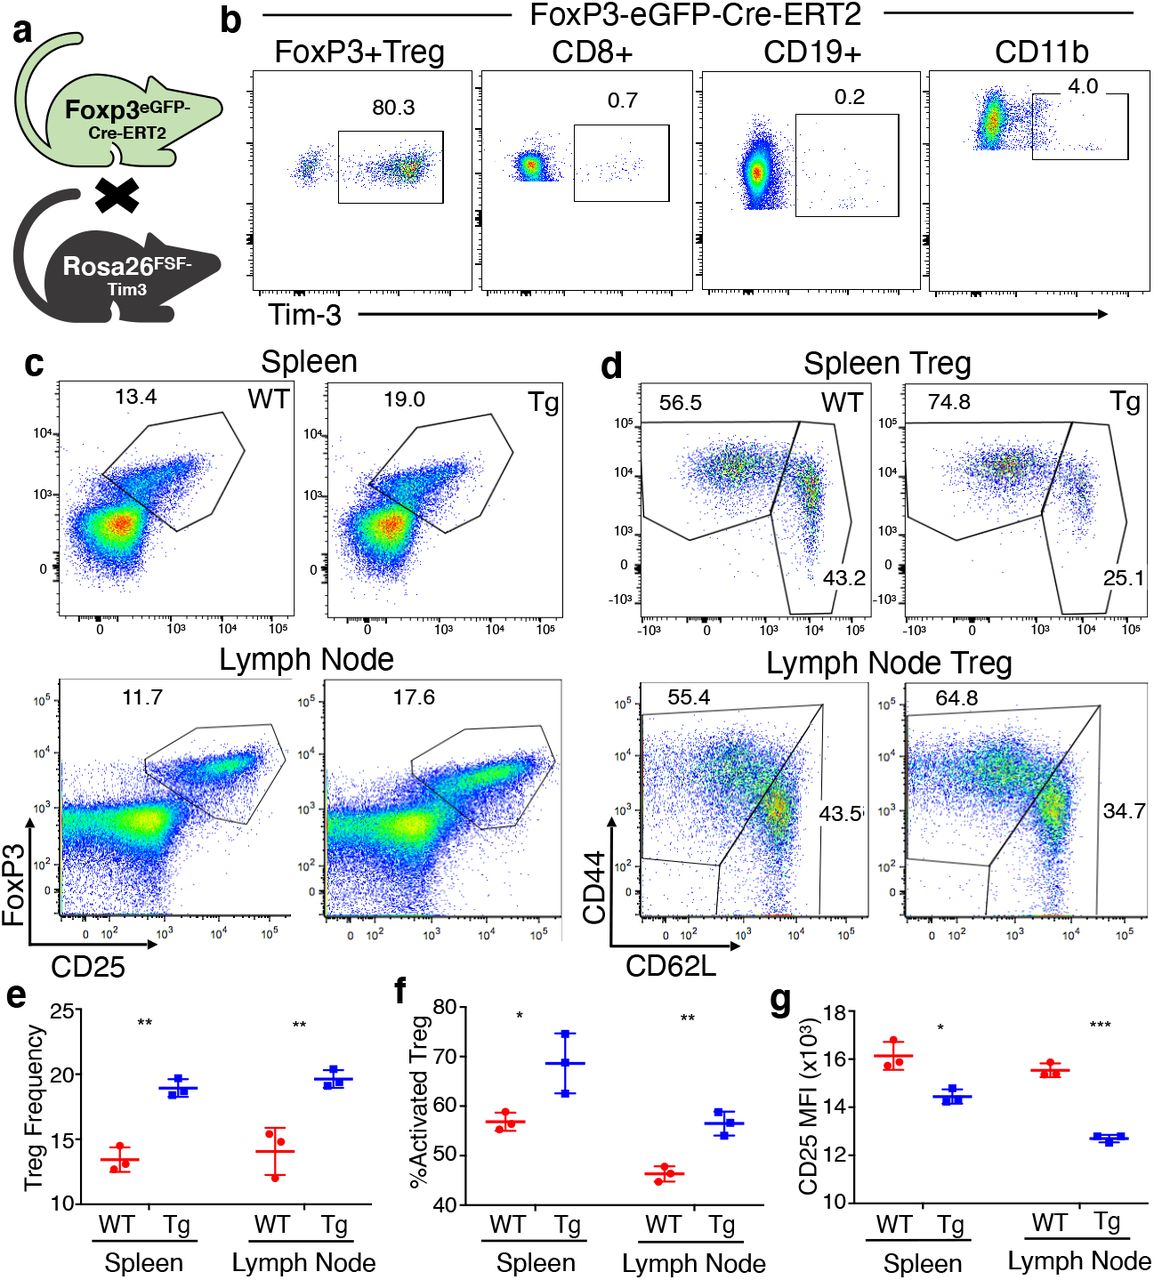 More-restricted expression and Treg activation phenotype of FoxP3-eGFP-Cre-ERT2 x FSF-Tim3 mice. (a) Crosses used to generate FoxP3-eGFP-Cre-ERT2 x FSF-Tim-3 mice. (b) Tim-3 transgene expression is restricted to CD4 + Treg when driven by the tamoxifen-inducible Cre. (c) Proportion of FoxP3 + CD25 + Treg in spleen and LN of Tim-3 Tg vs. WT (Cre only) animals. (d) Activation status of Treg from the Tim-3 Tg vs. WT animals. (e) Quantitation of Treg frequency (among CD4 + T cells). (f) Quantitation of activated (CD44 + CD62L − ) Treg. (g) Levels of expression of CD25 (based on MFI of flow cytometry data). Mice were analyzed at 6-8 weeks of age. Representative of three experiments with 3-4 mice per experiment.